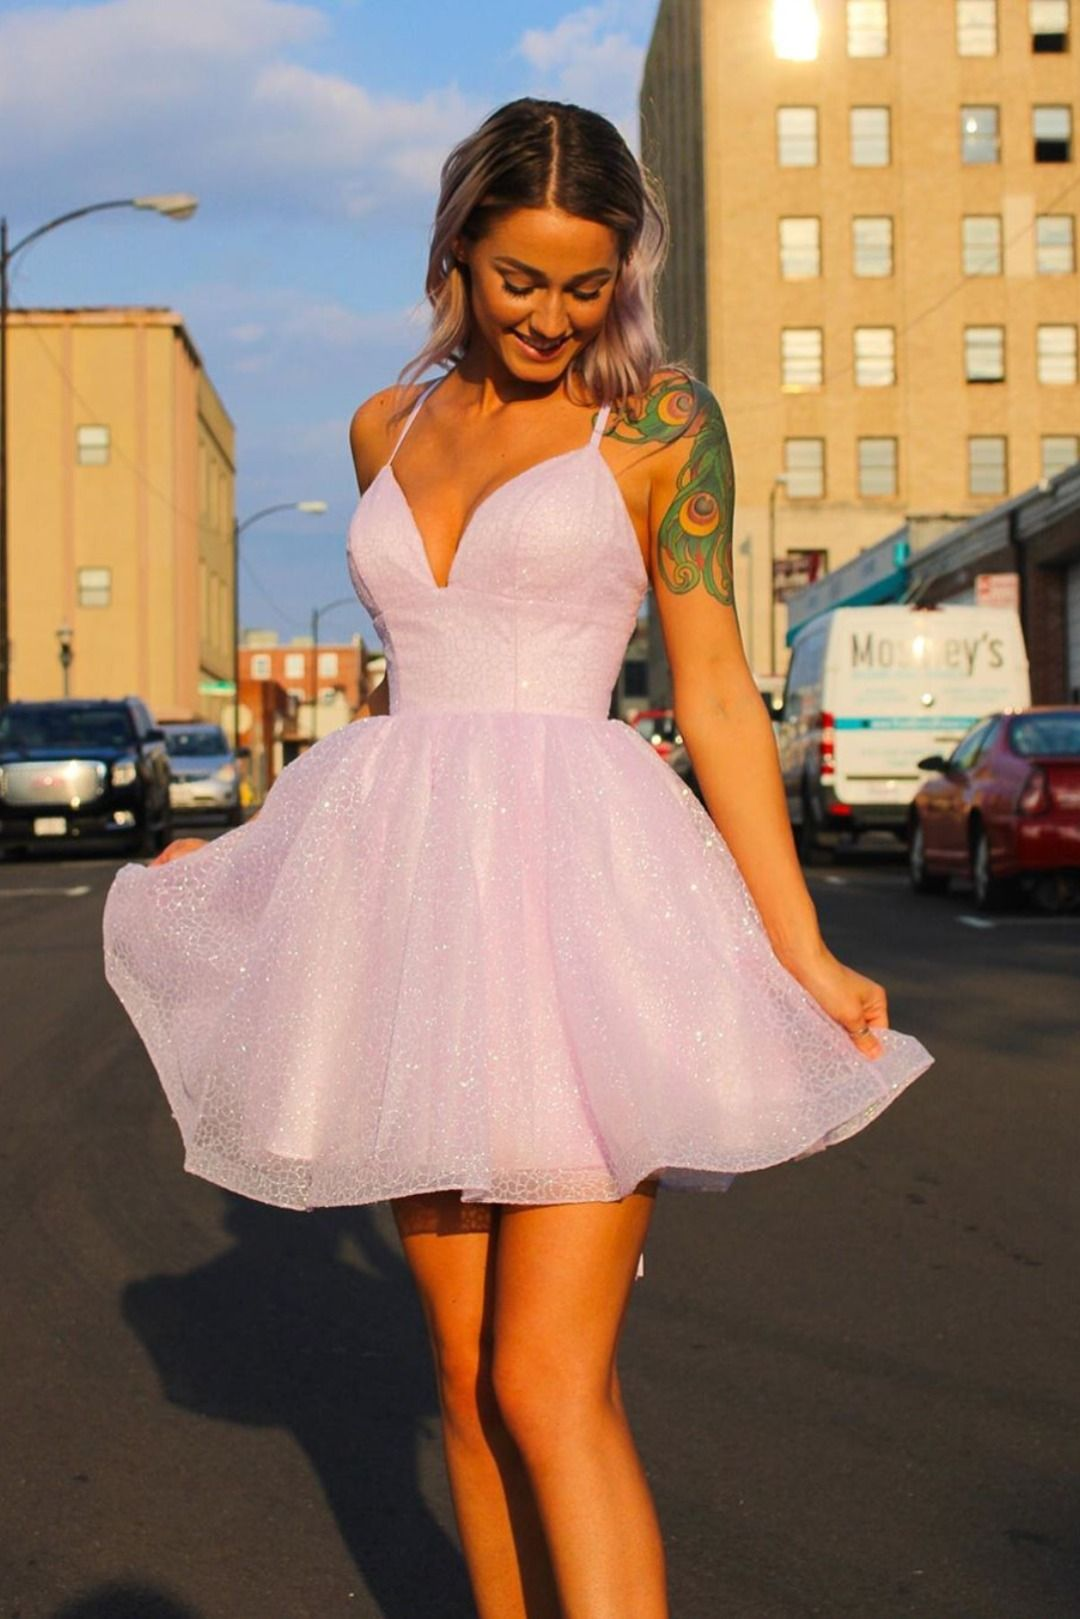 Lavender A Line Short Homecoming Dress From Wendyhouse In 2021 A Line Prom Dresses Short Homecoming Dress Homecoming Dresses [ 1619 x 1080 Pixel ]